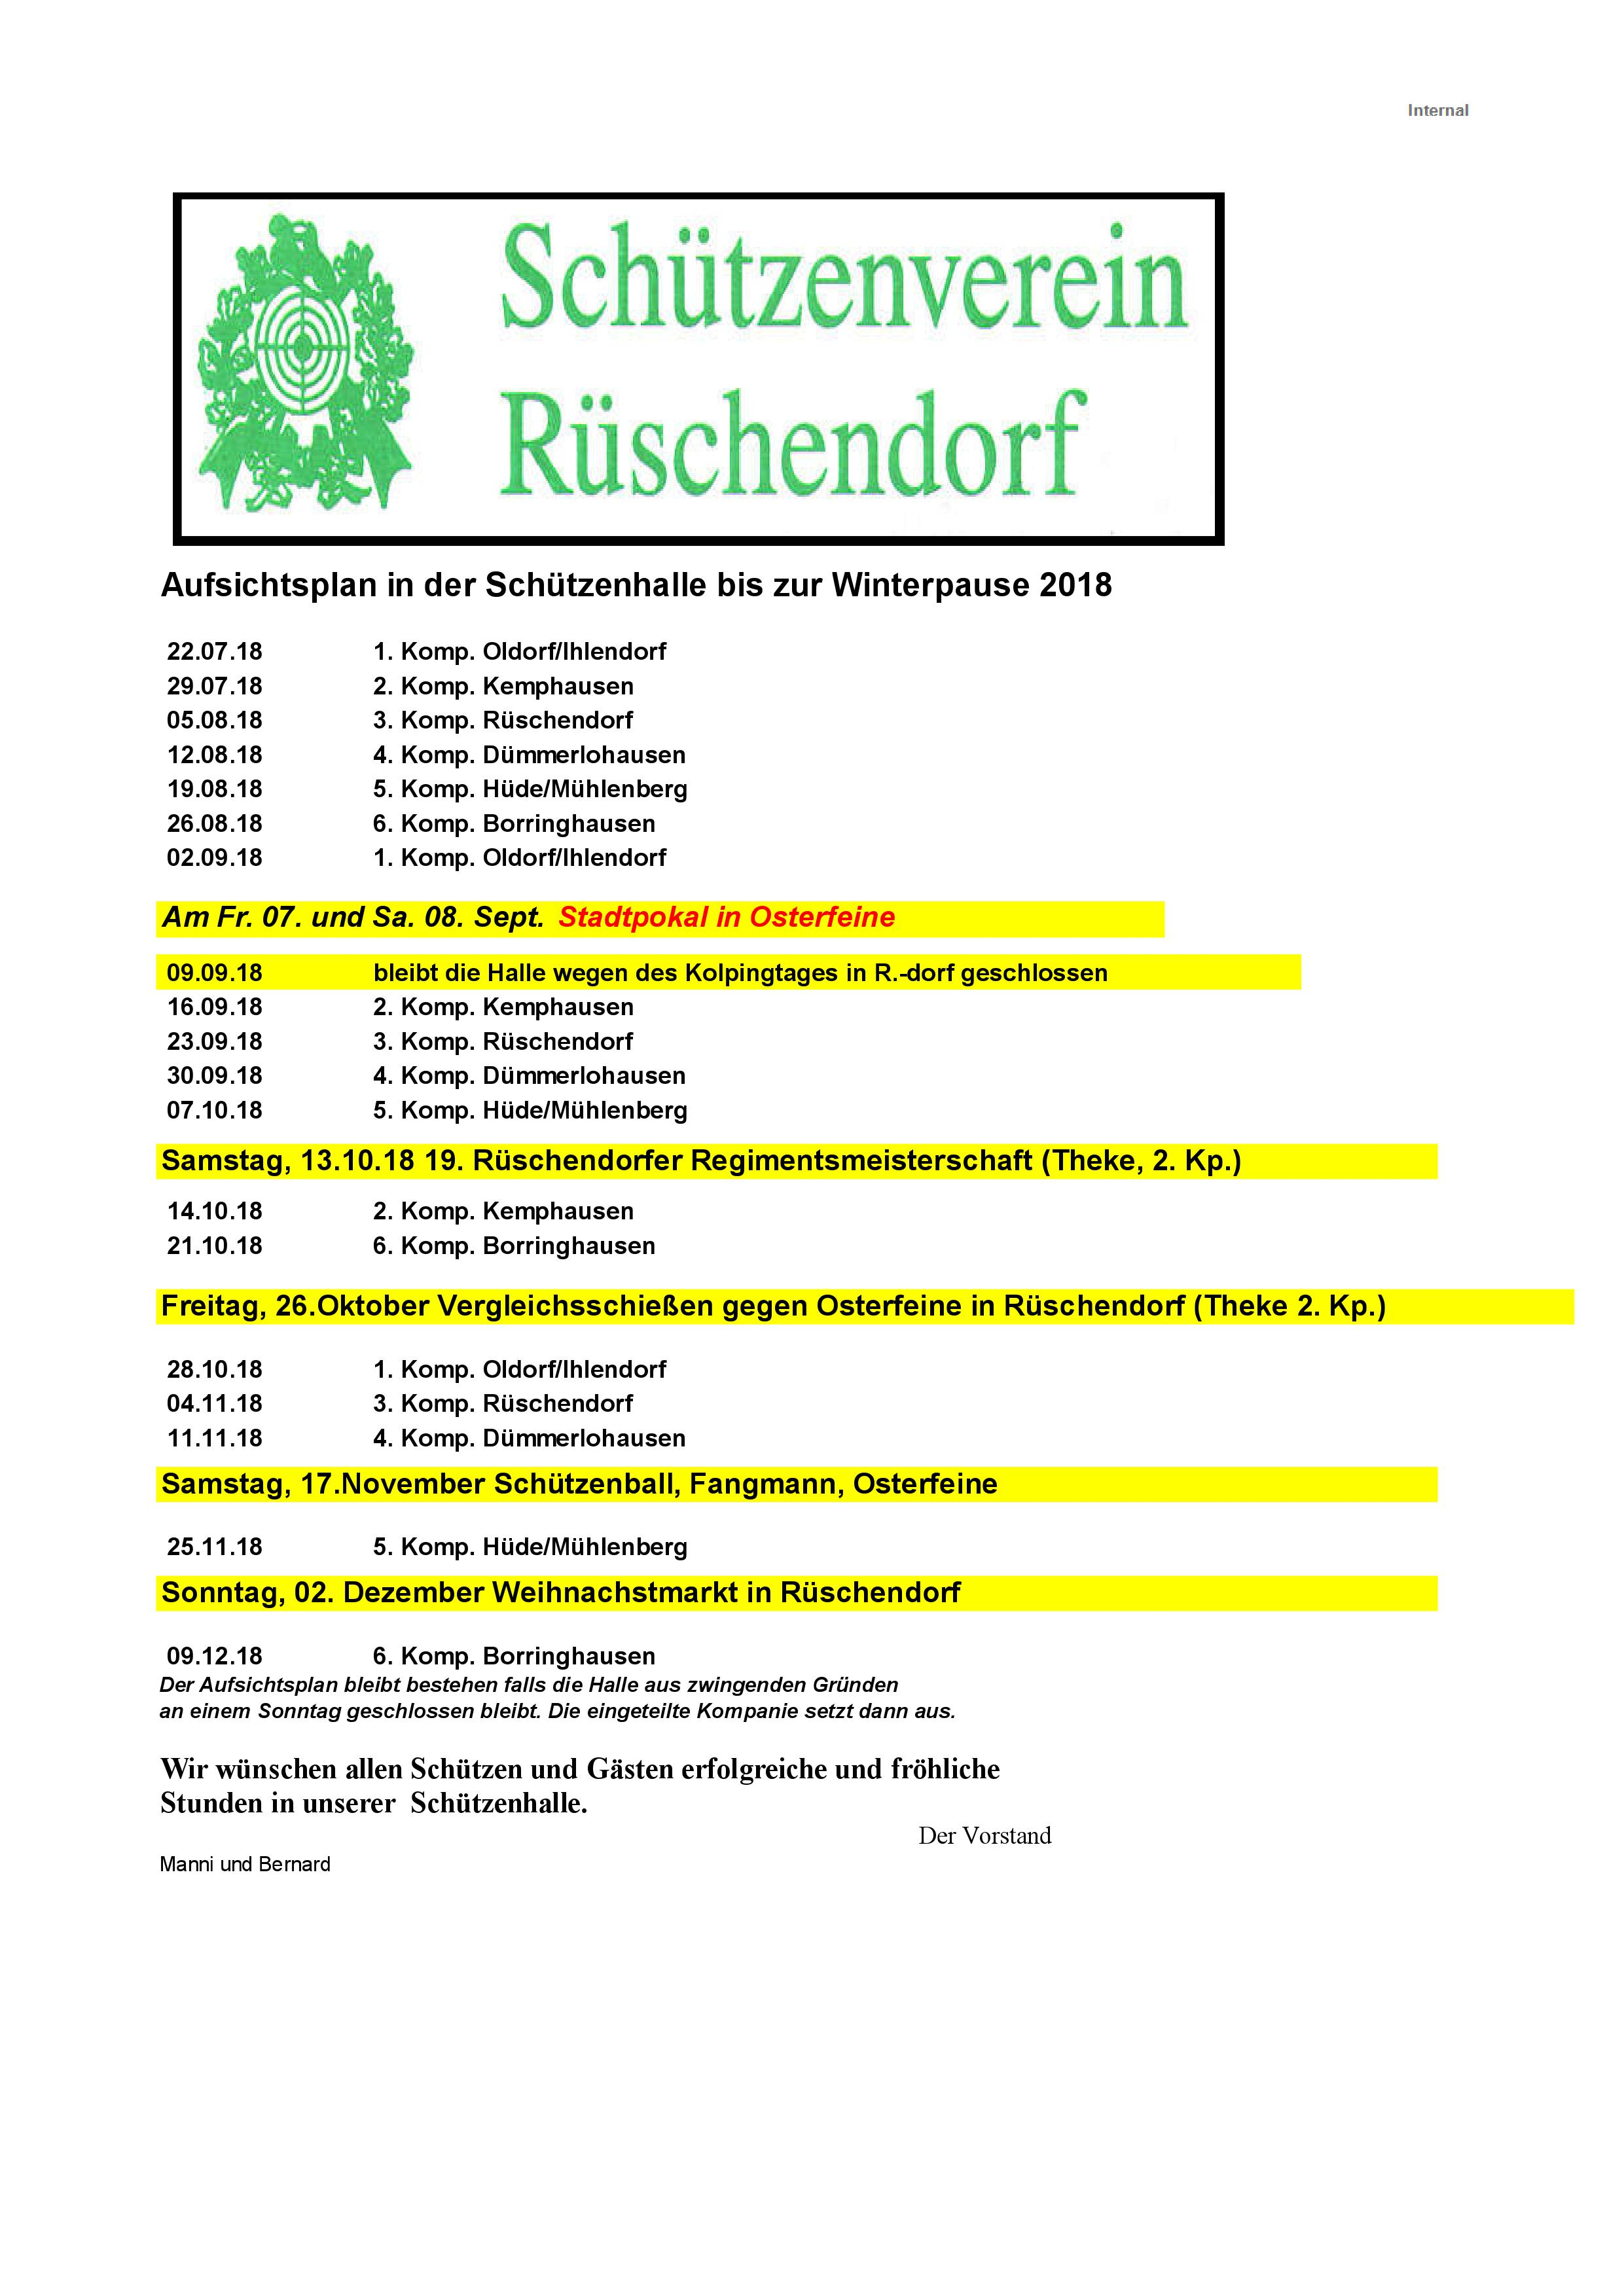 Hallenplan bis Winter 2018